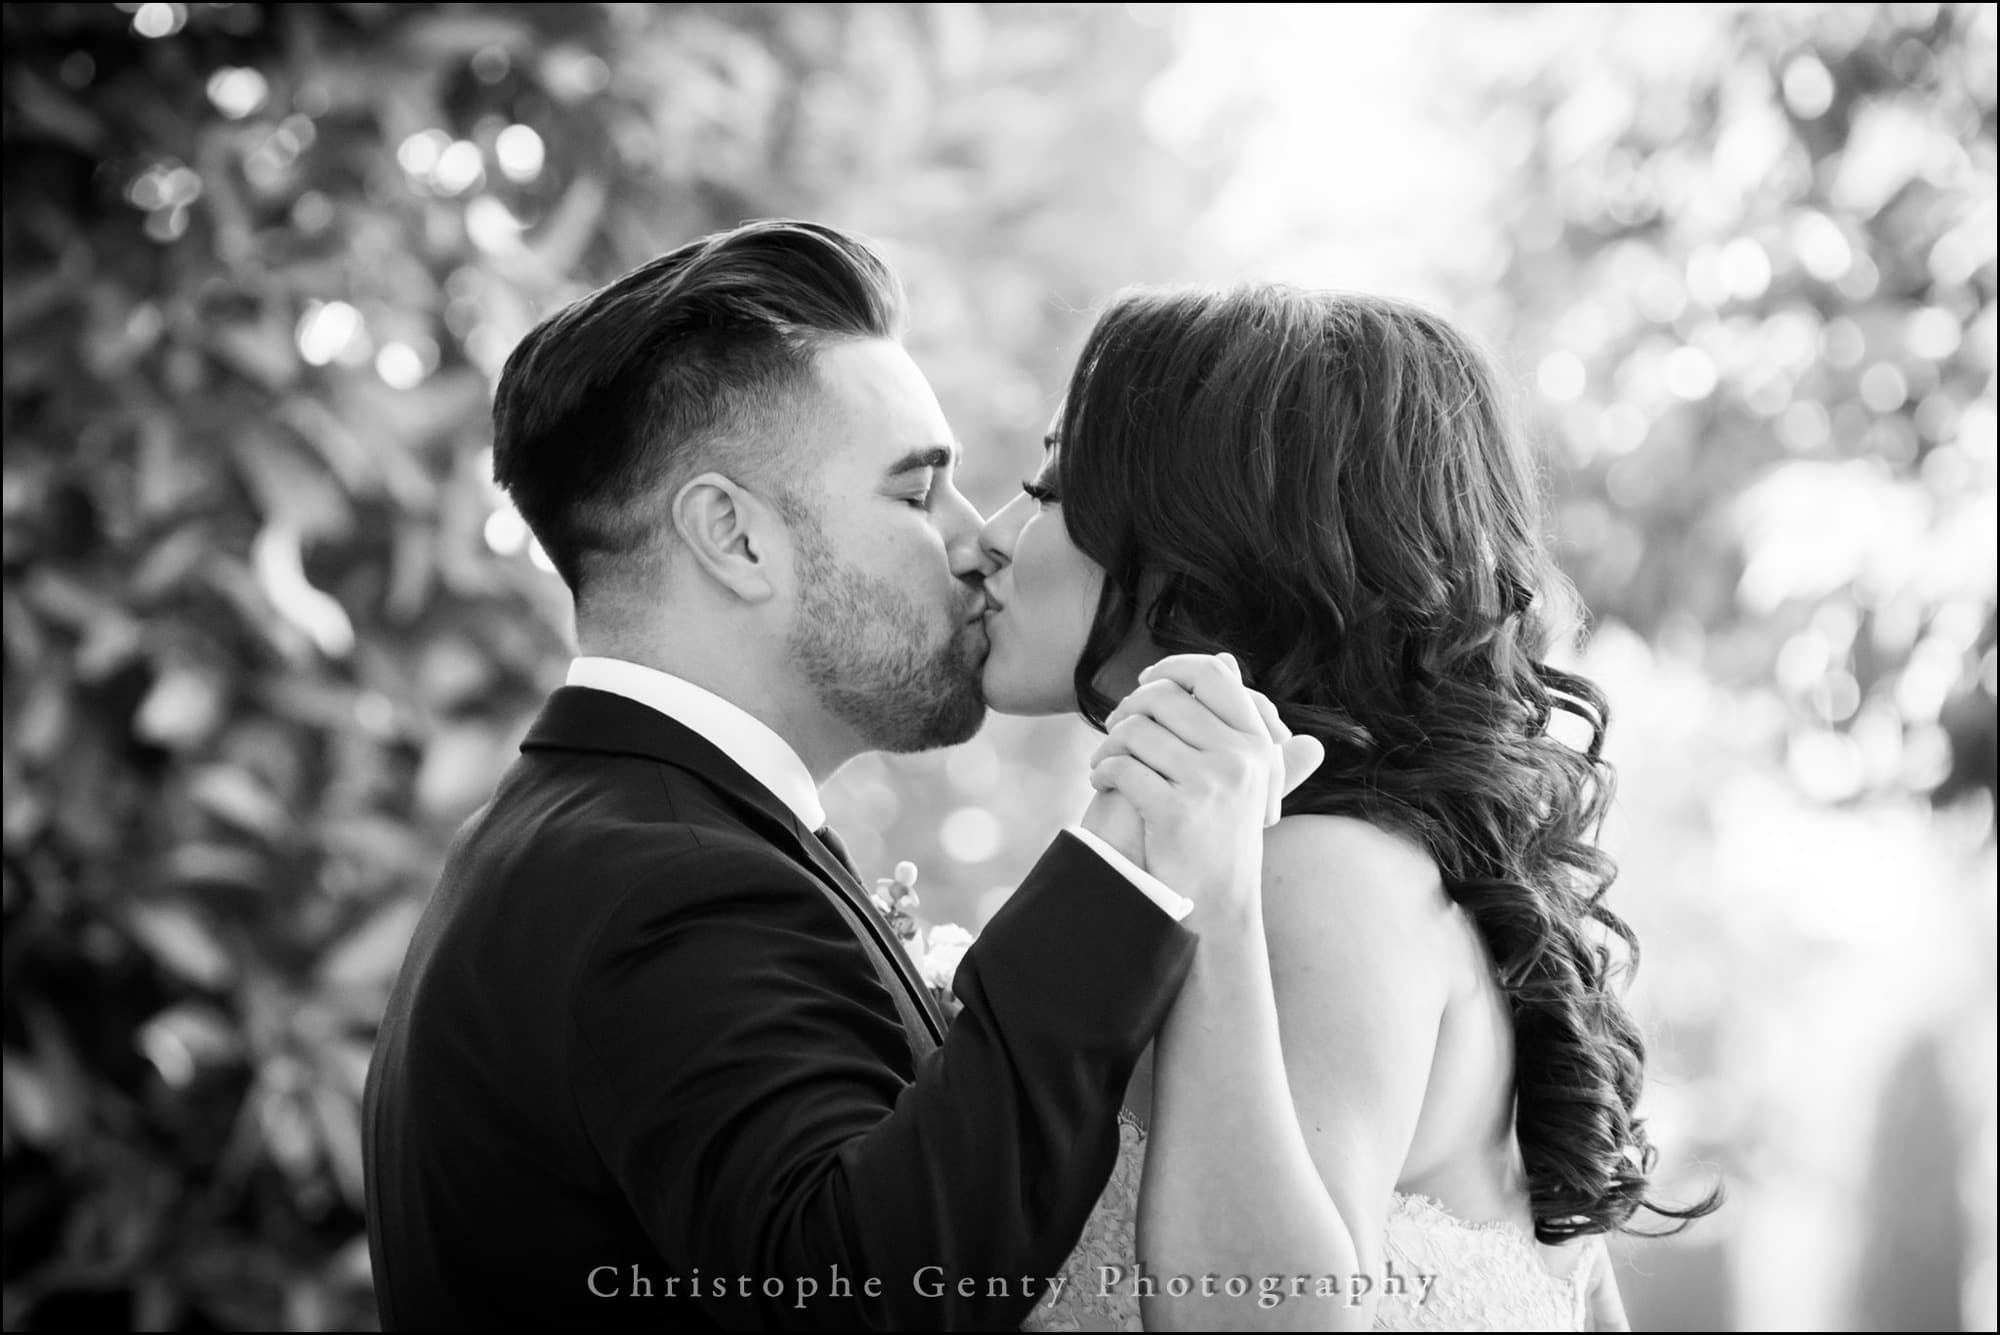 Wedding Photography at The Villagio Inn in Yountville, CA